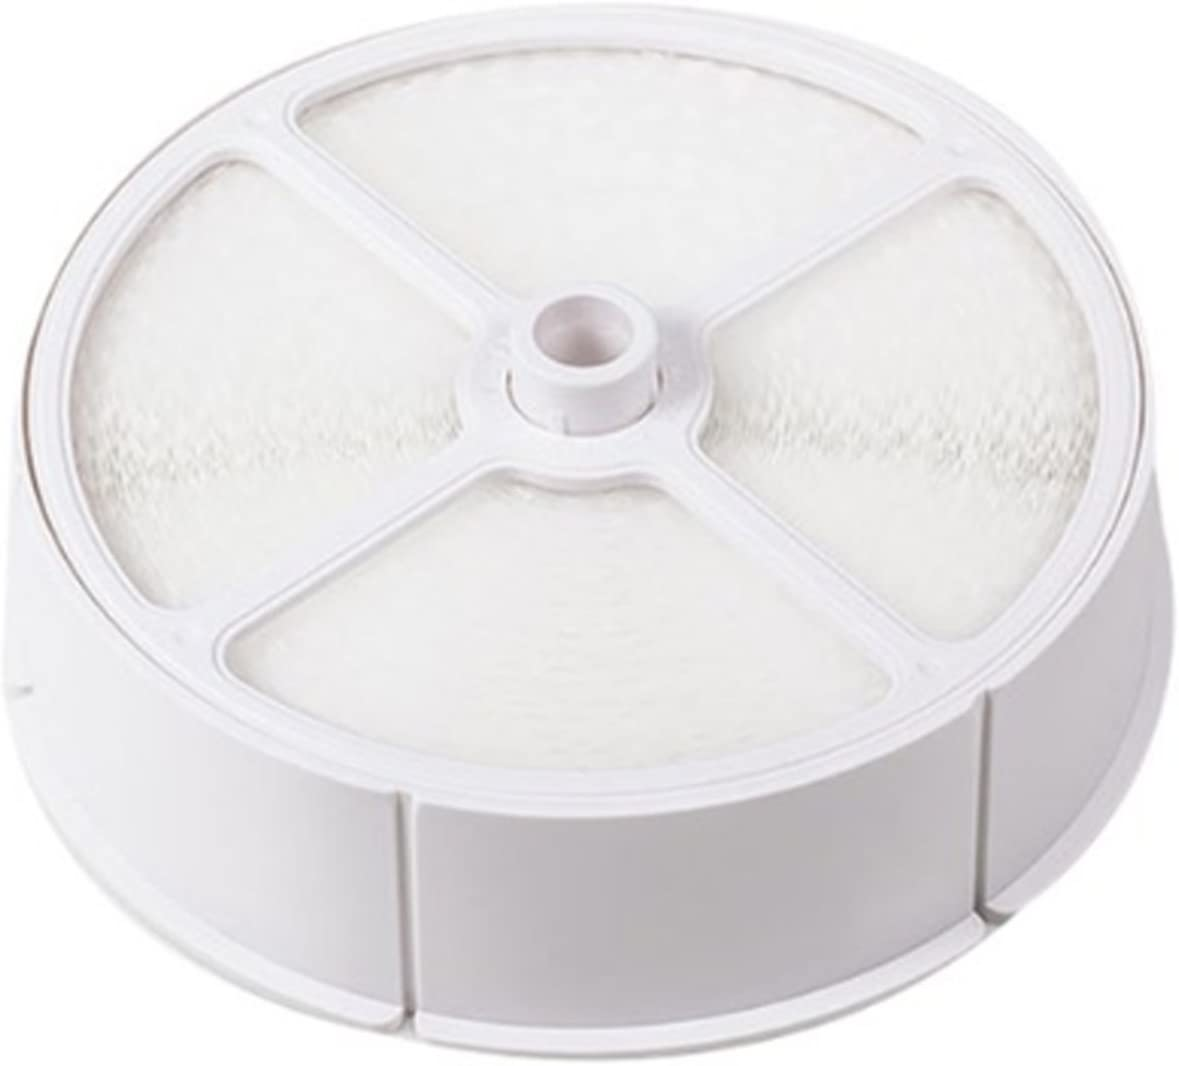 Amazing Aircon Filtro purificador de aire lavable 1 Set Blanco: Amazon.es: Hogar